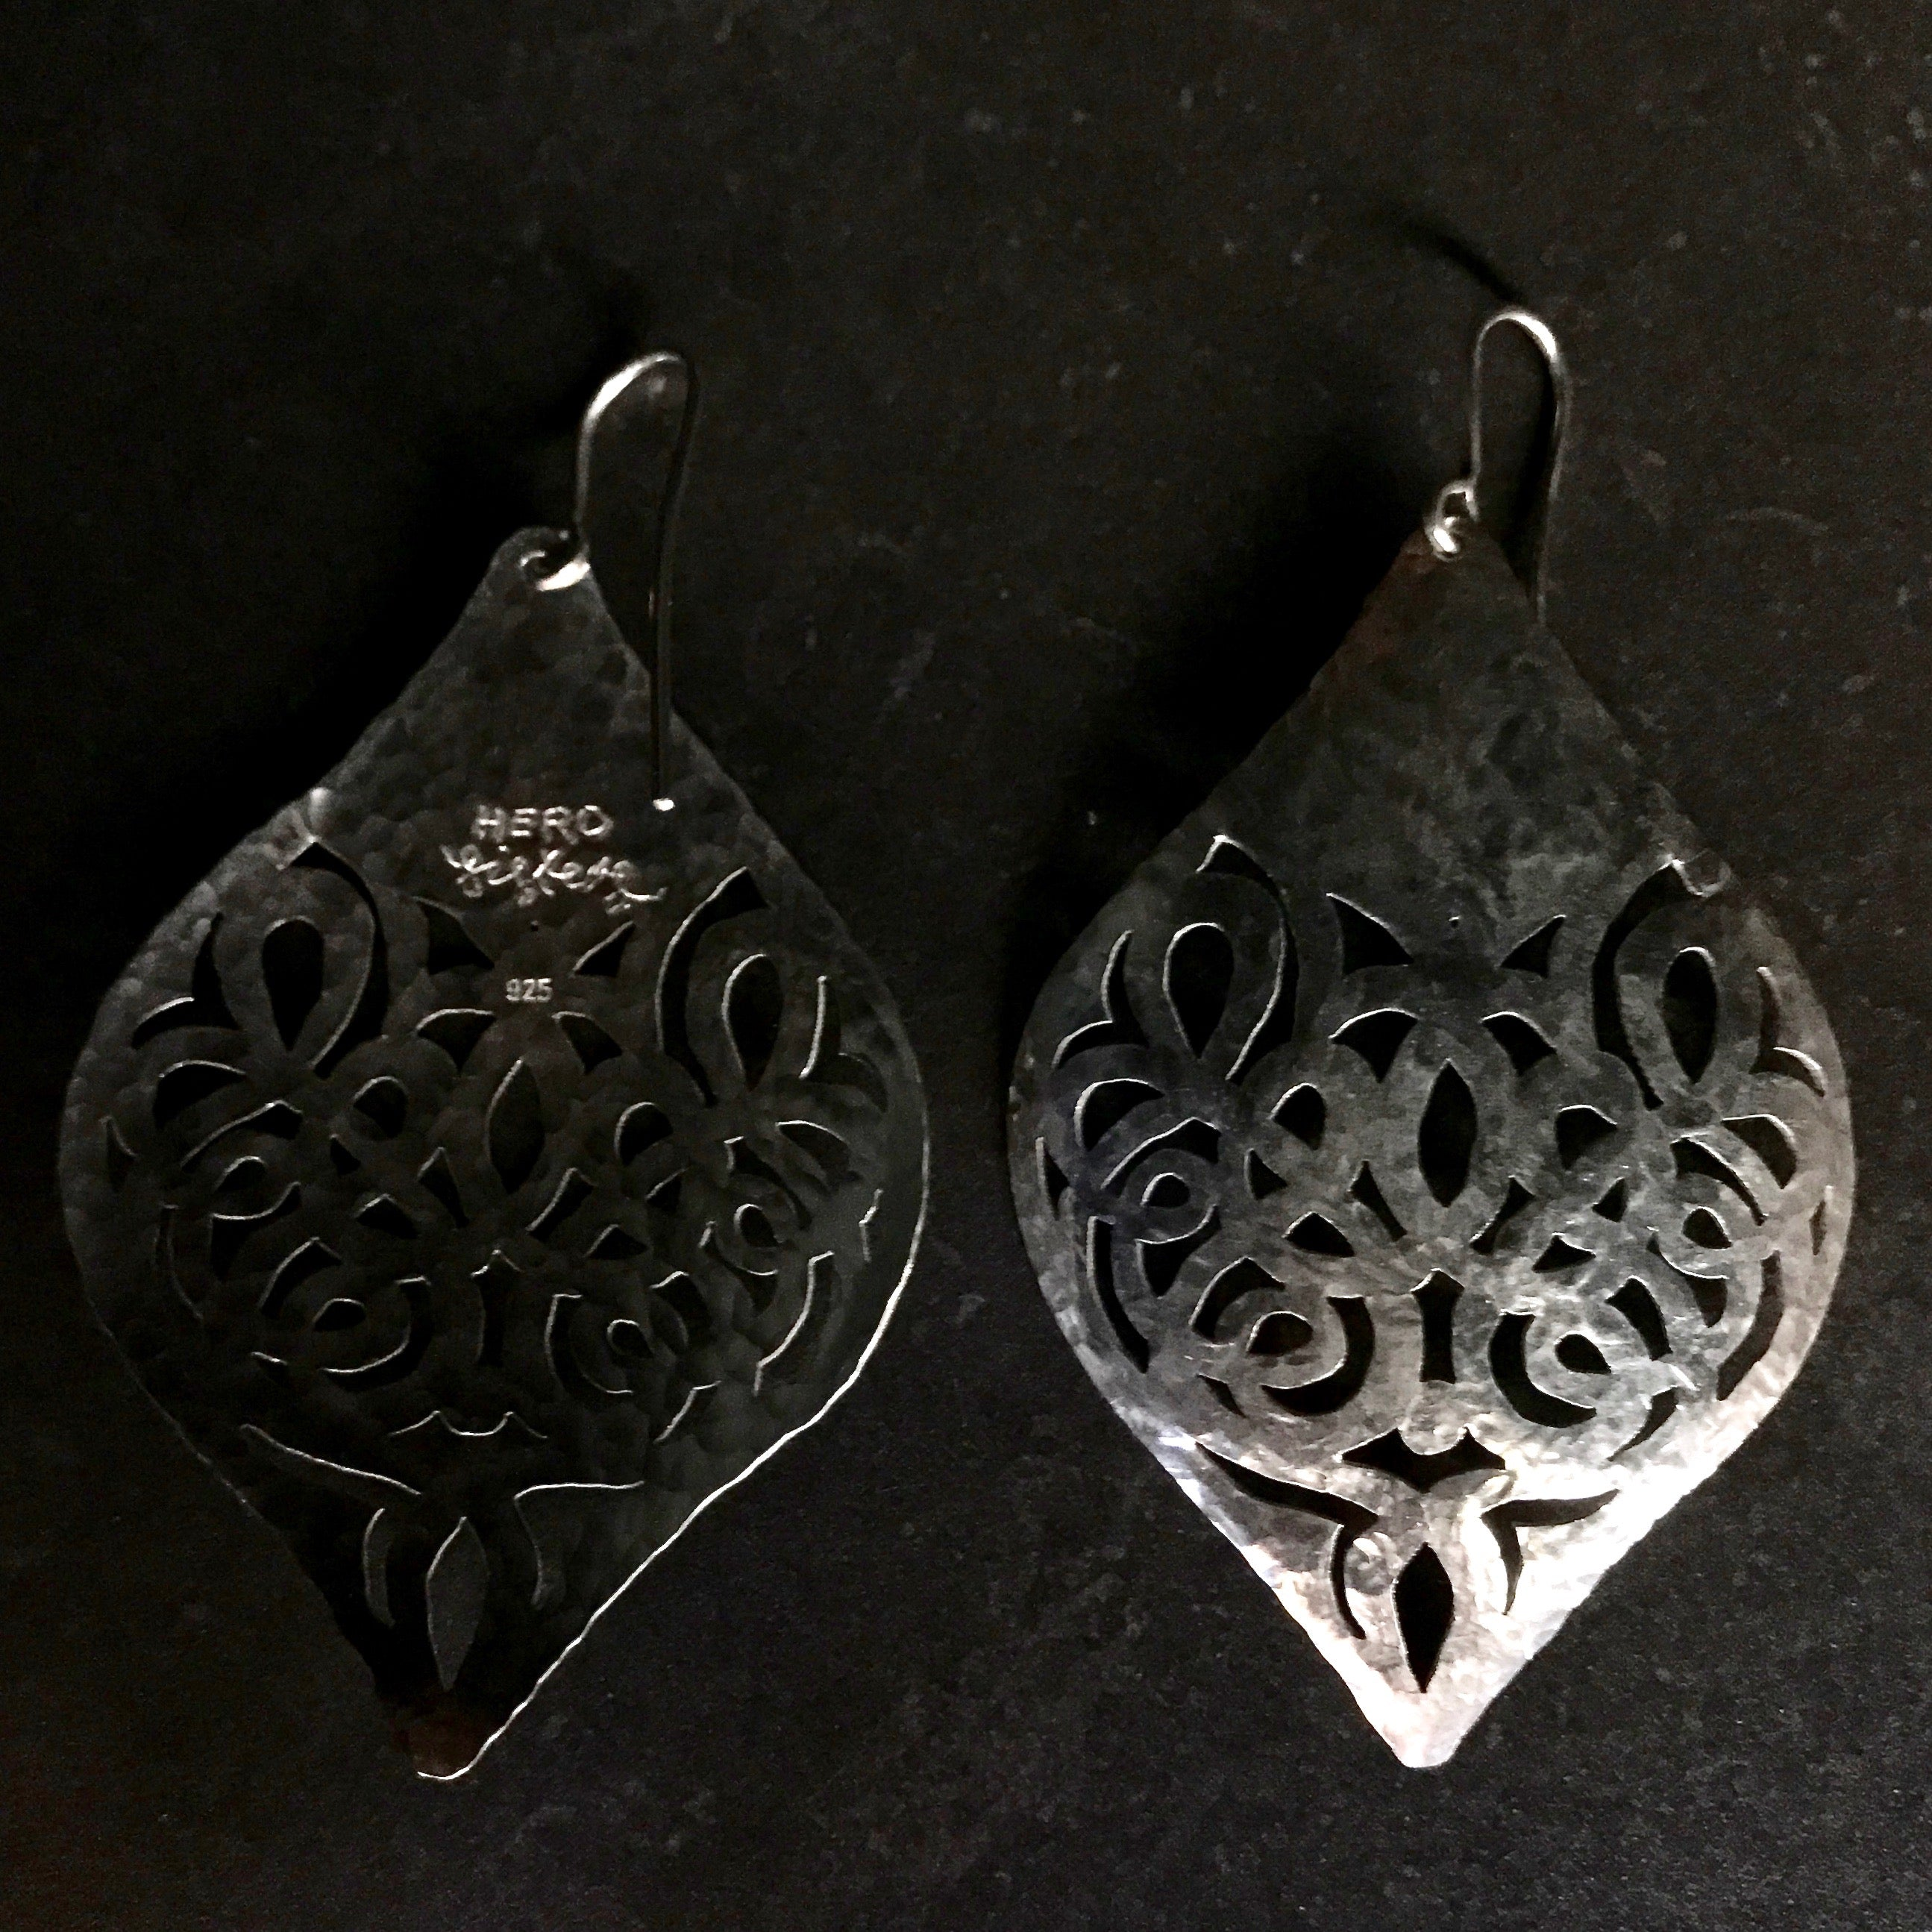 TESS0102 Earrings  by herosisters - Luxury handmade silver jewelry and accessories